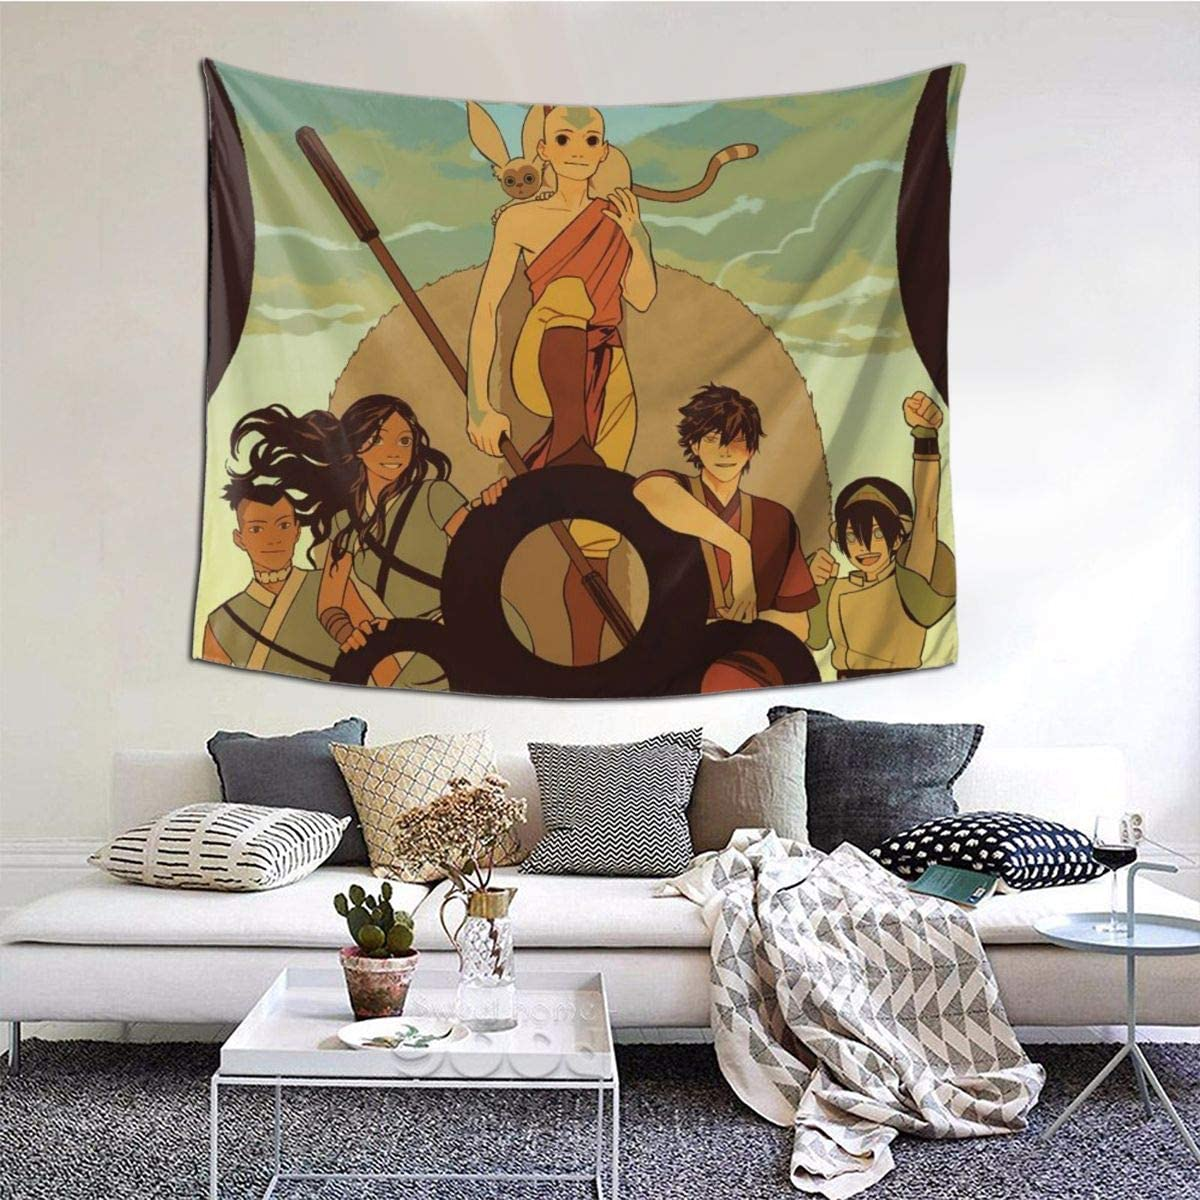 LuchinoVisconti Avatar The Last Airbender Wall Tapestry Wall Hanging Tapestry for Bedroom Living Room Dorm Decor in 51×60 in